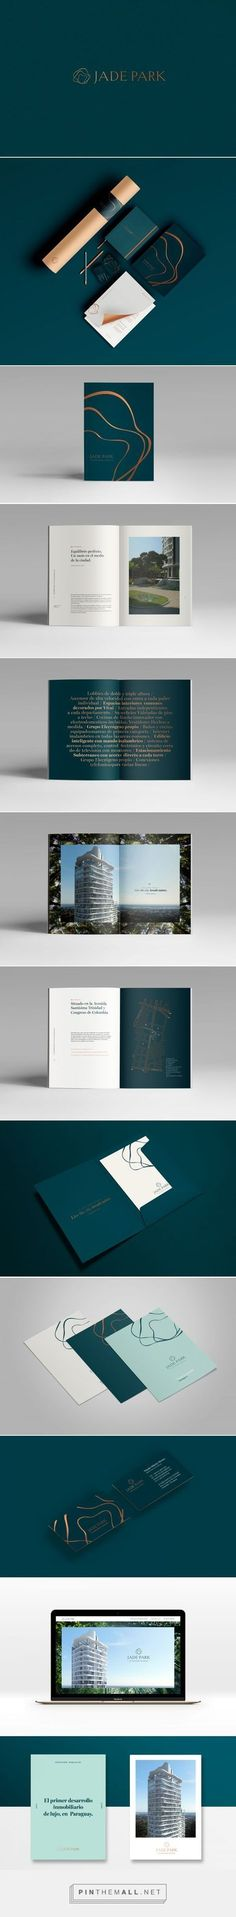 Jade Park Branding on Behance | Fivestar Branding – Design and Branding Agency & Inspiration Gallery